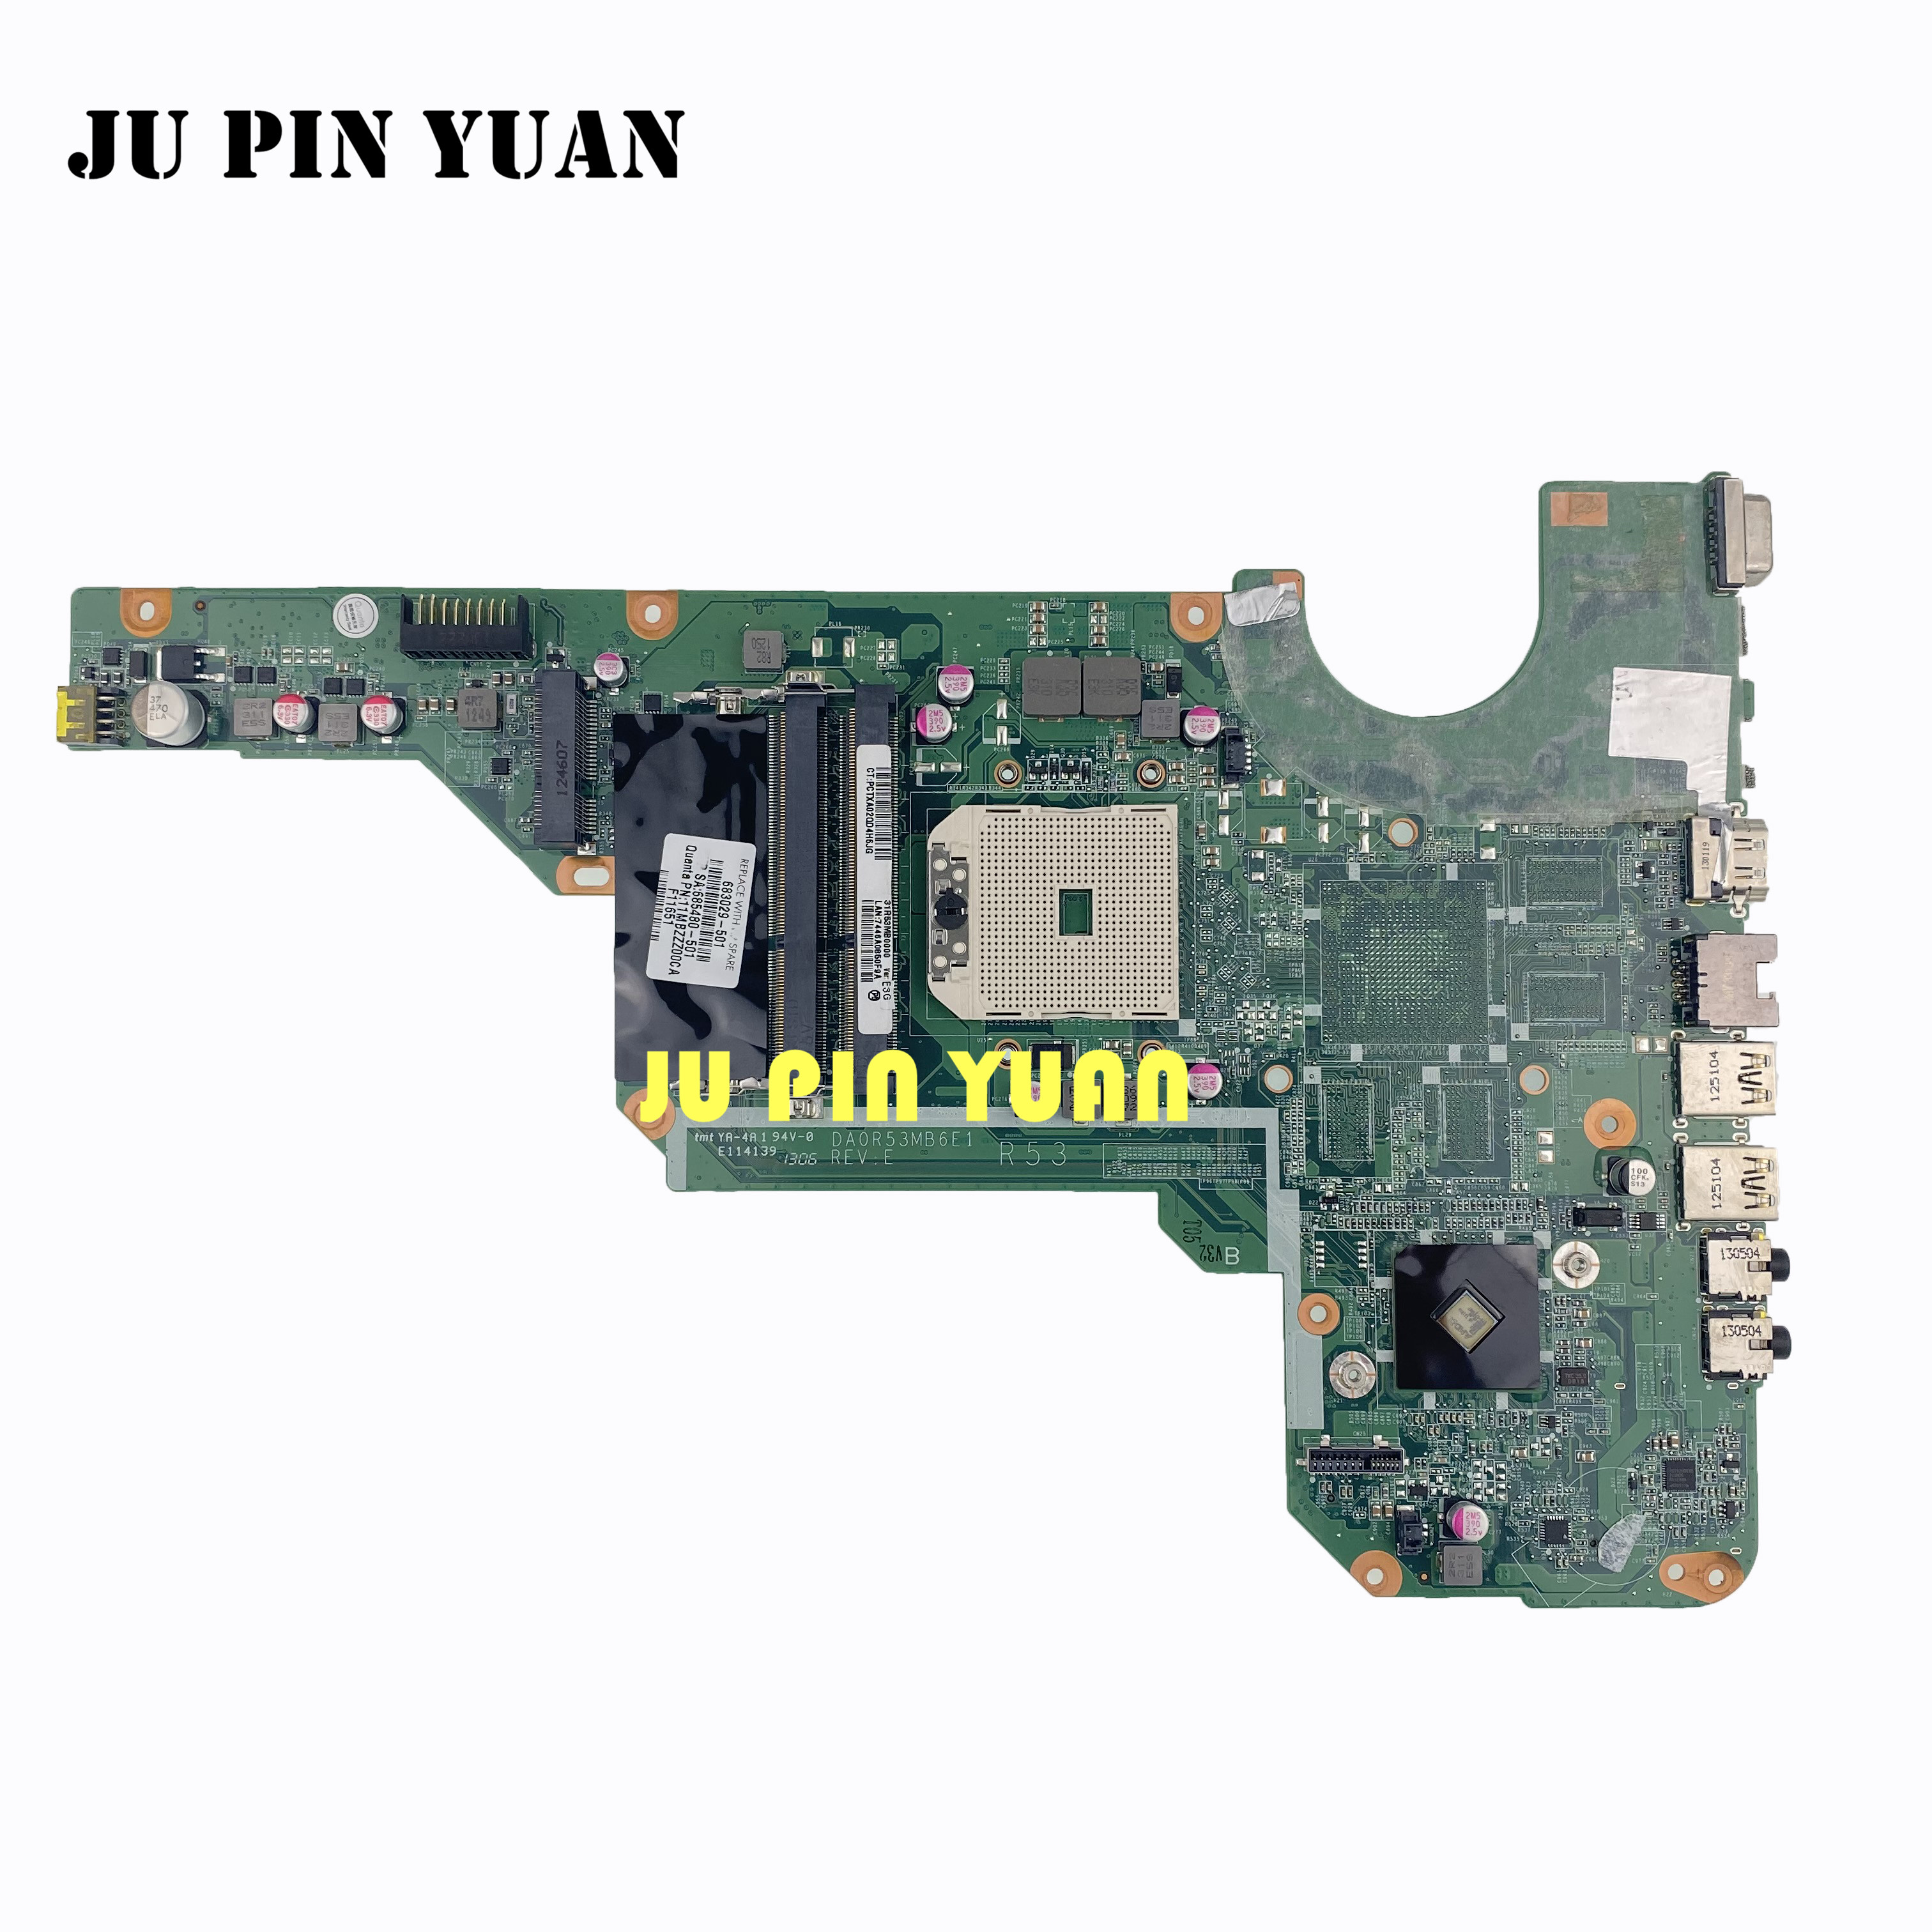 683029-501 683029-001 For HP Pavilion G4 G6 G7 G4-2000 G6-2000 Series Motherboard All Functions Fully Tested